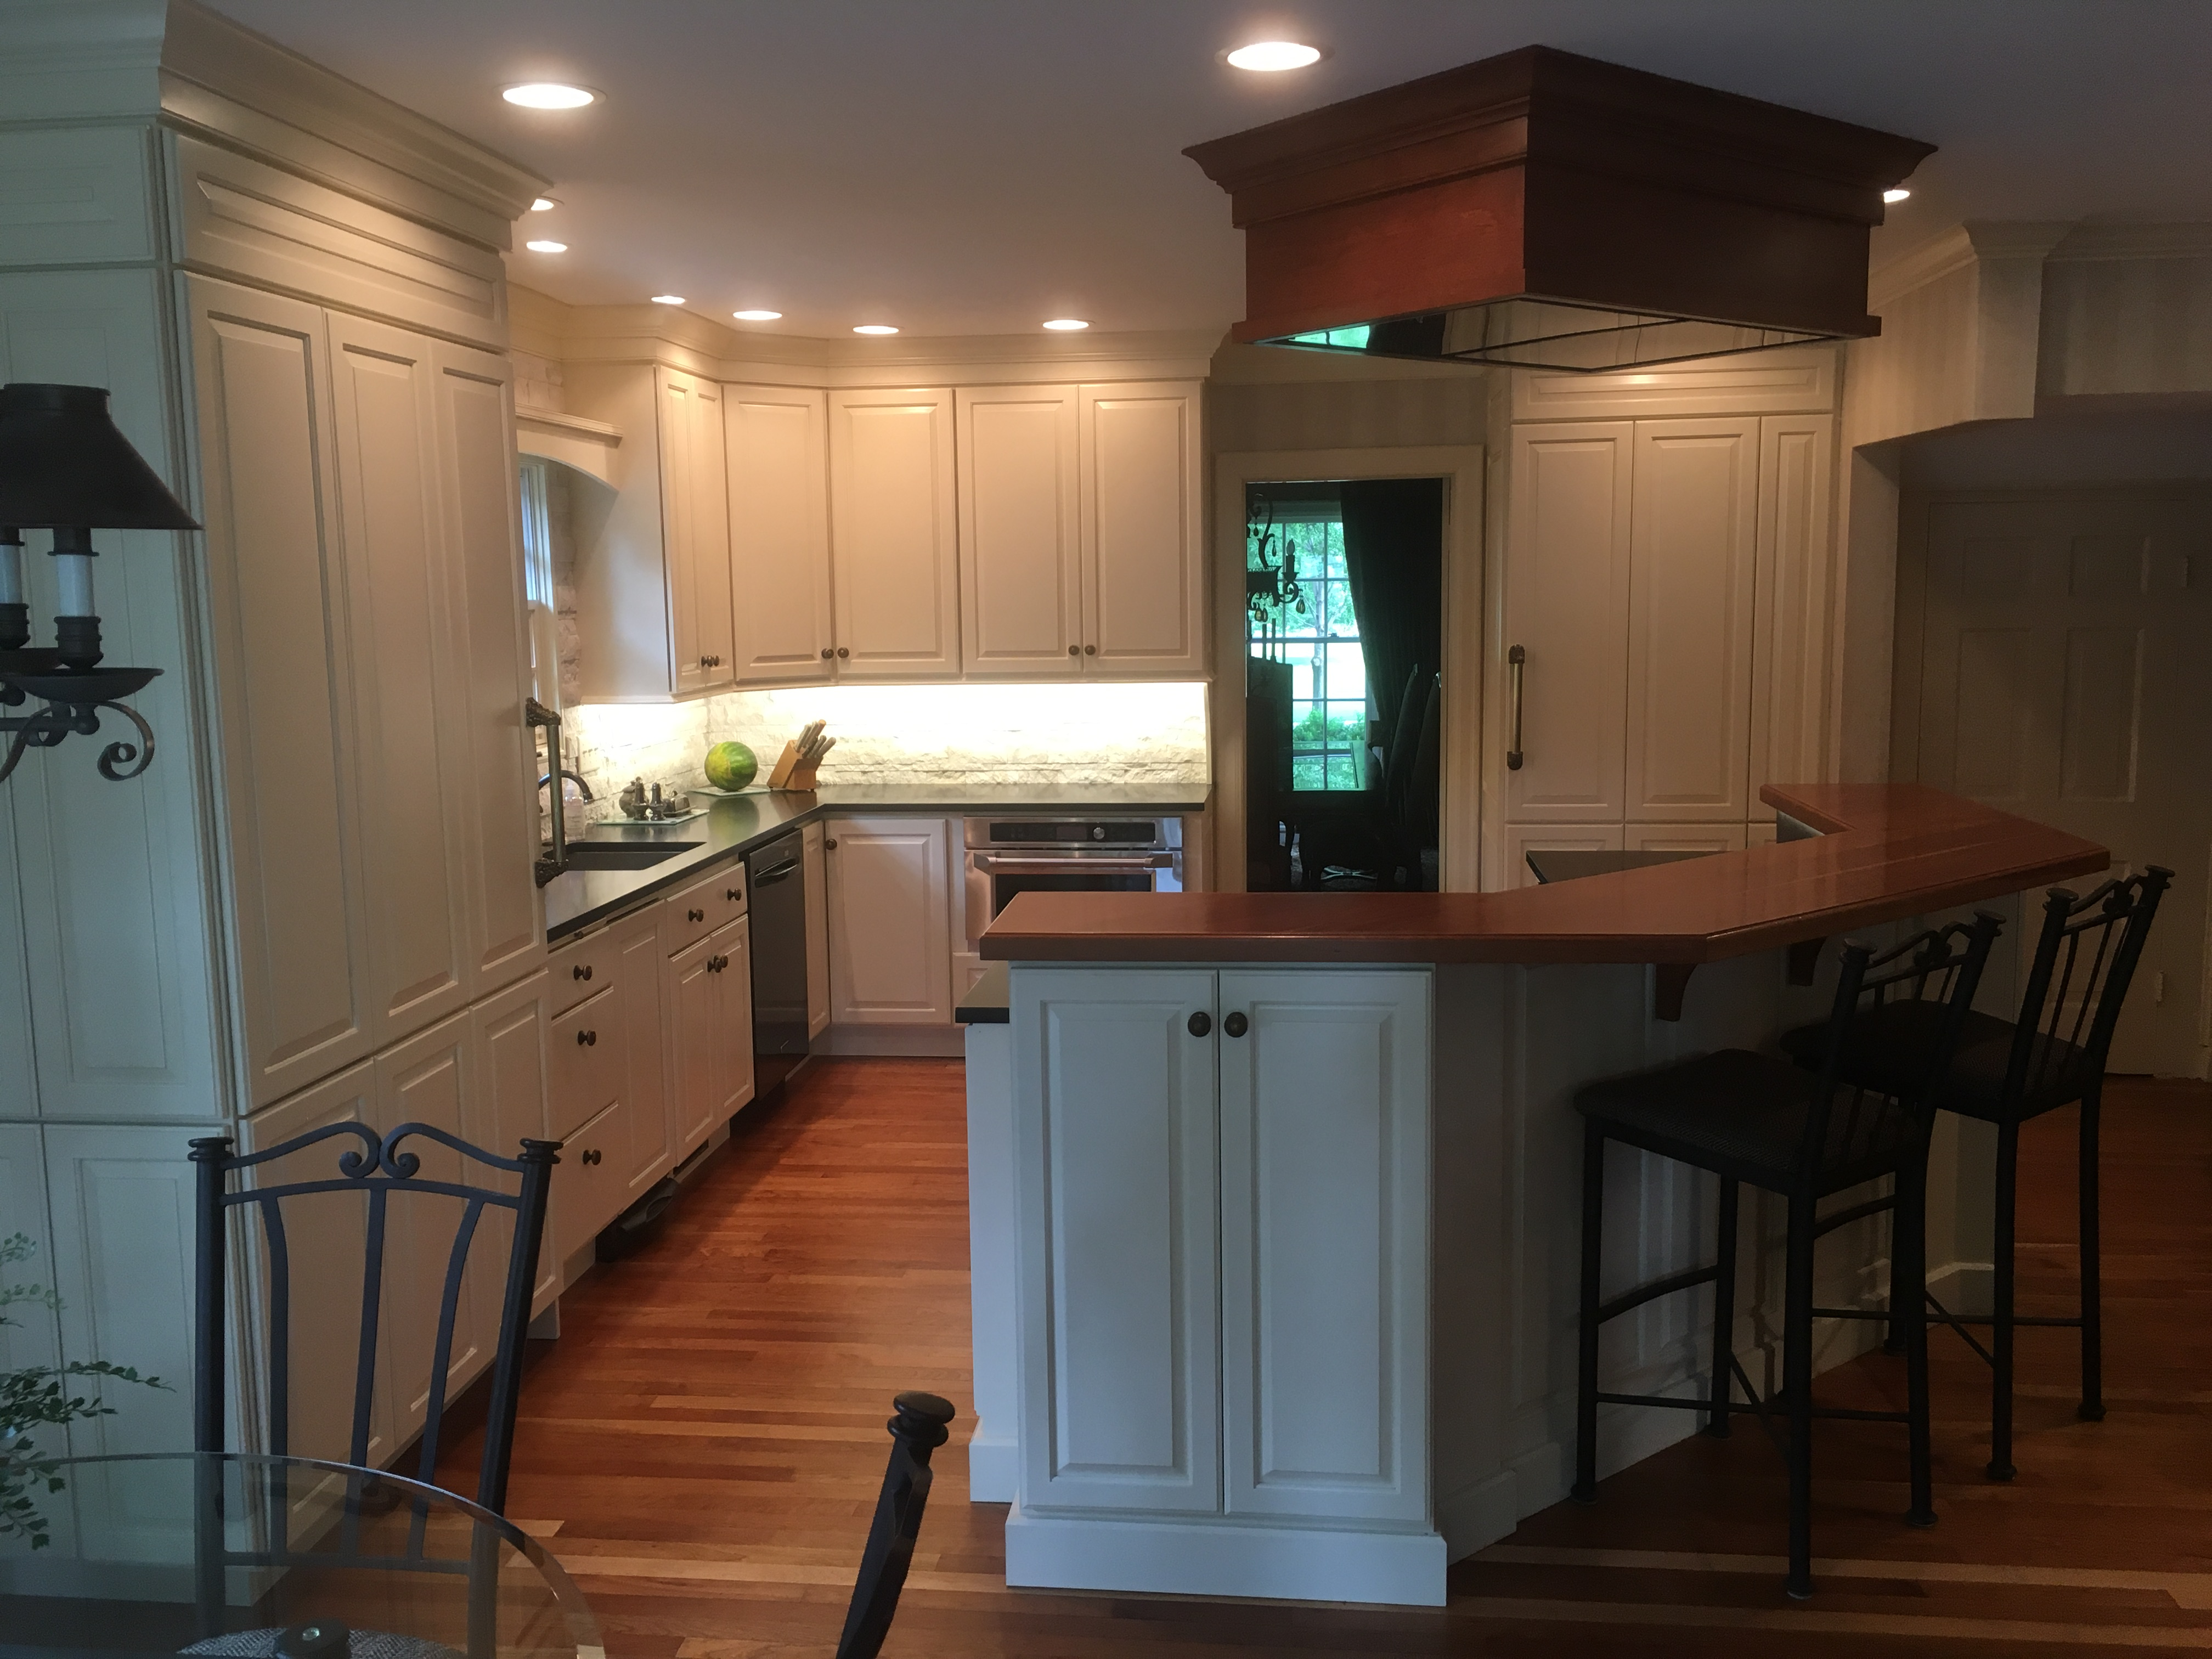 Williams Kitchen After Remodel